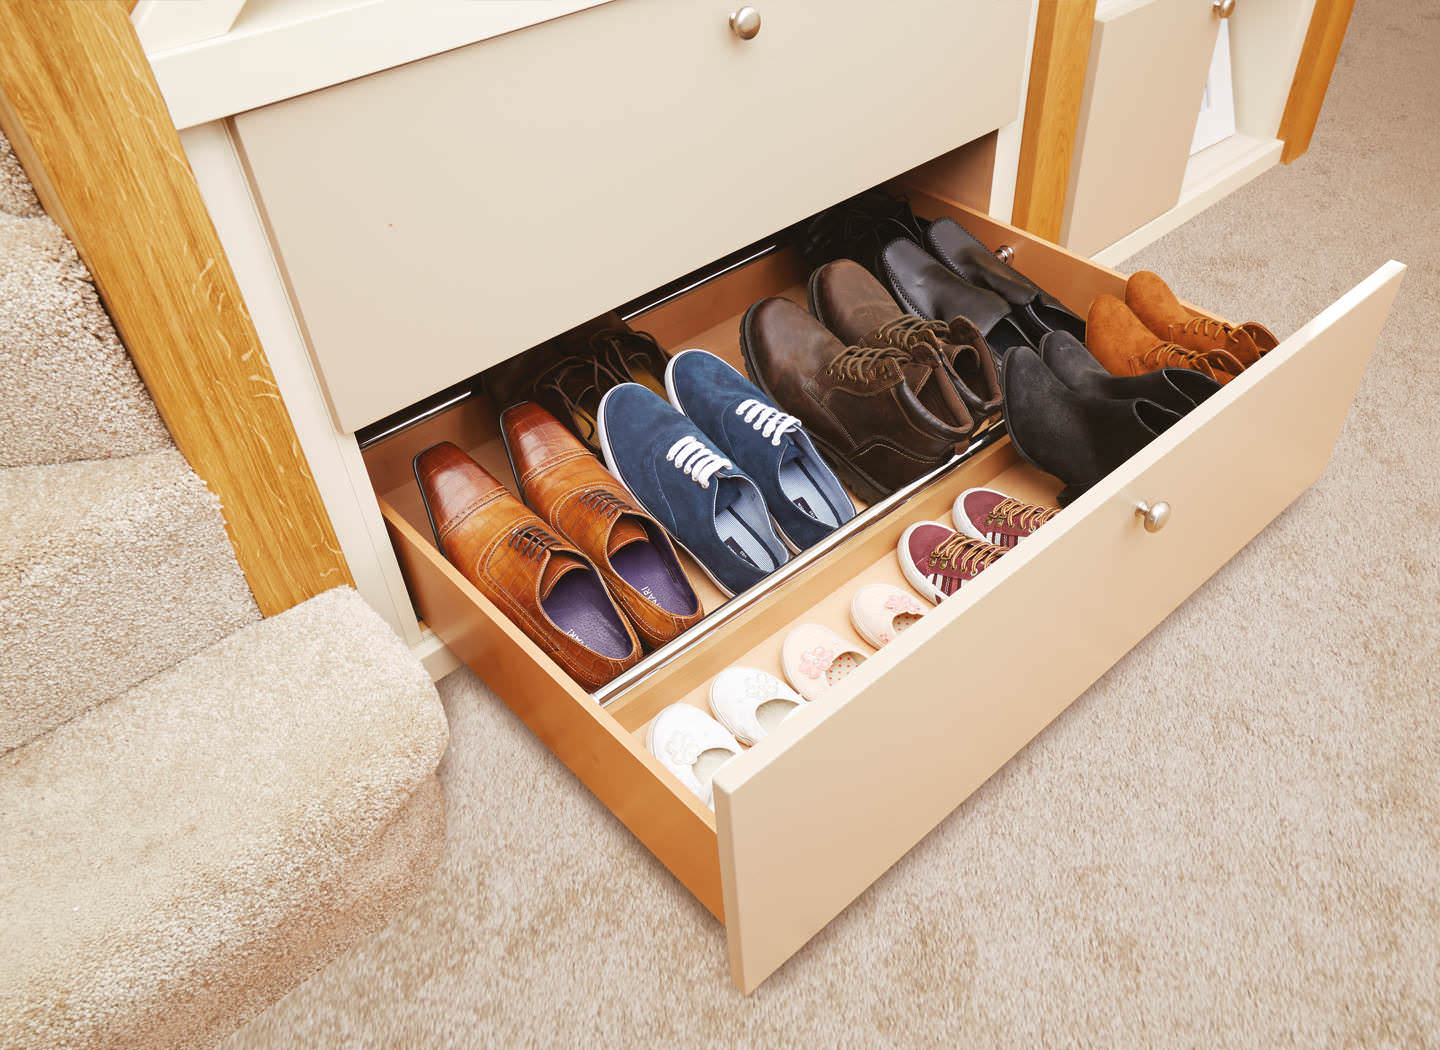 Case Study Showing Pull Out Shoe Drawer In Hallway